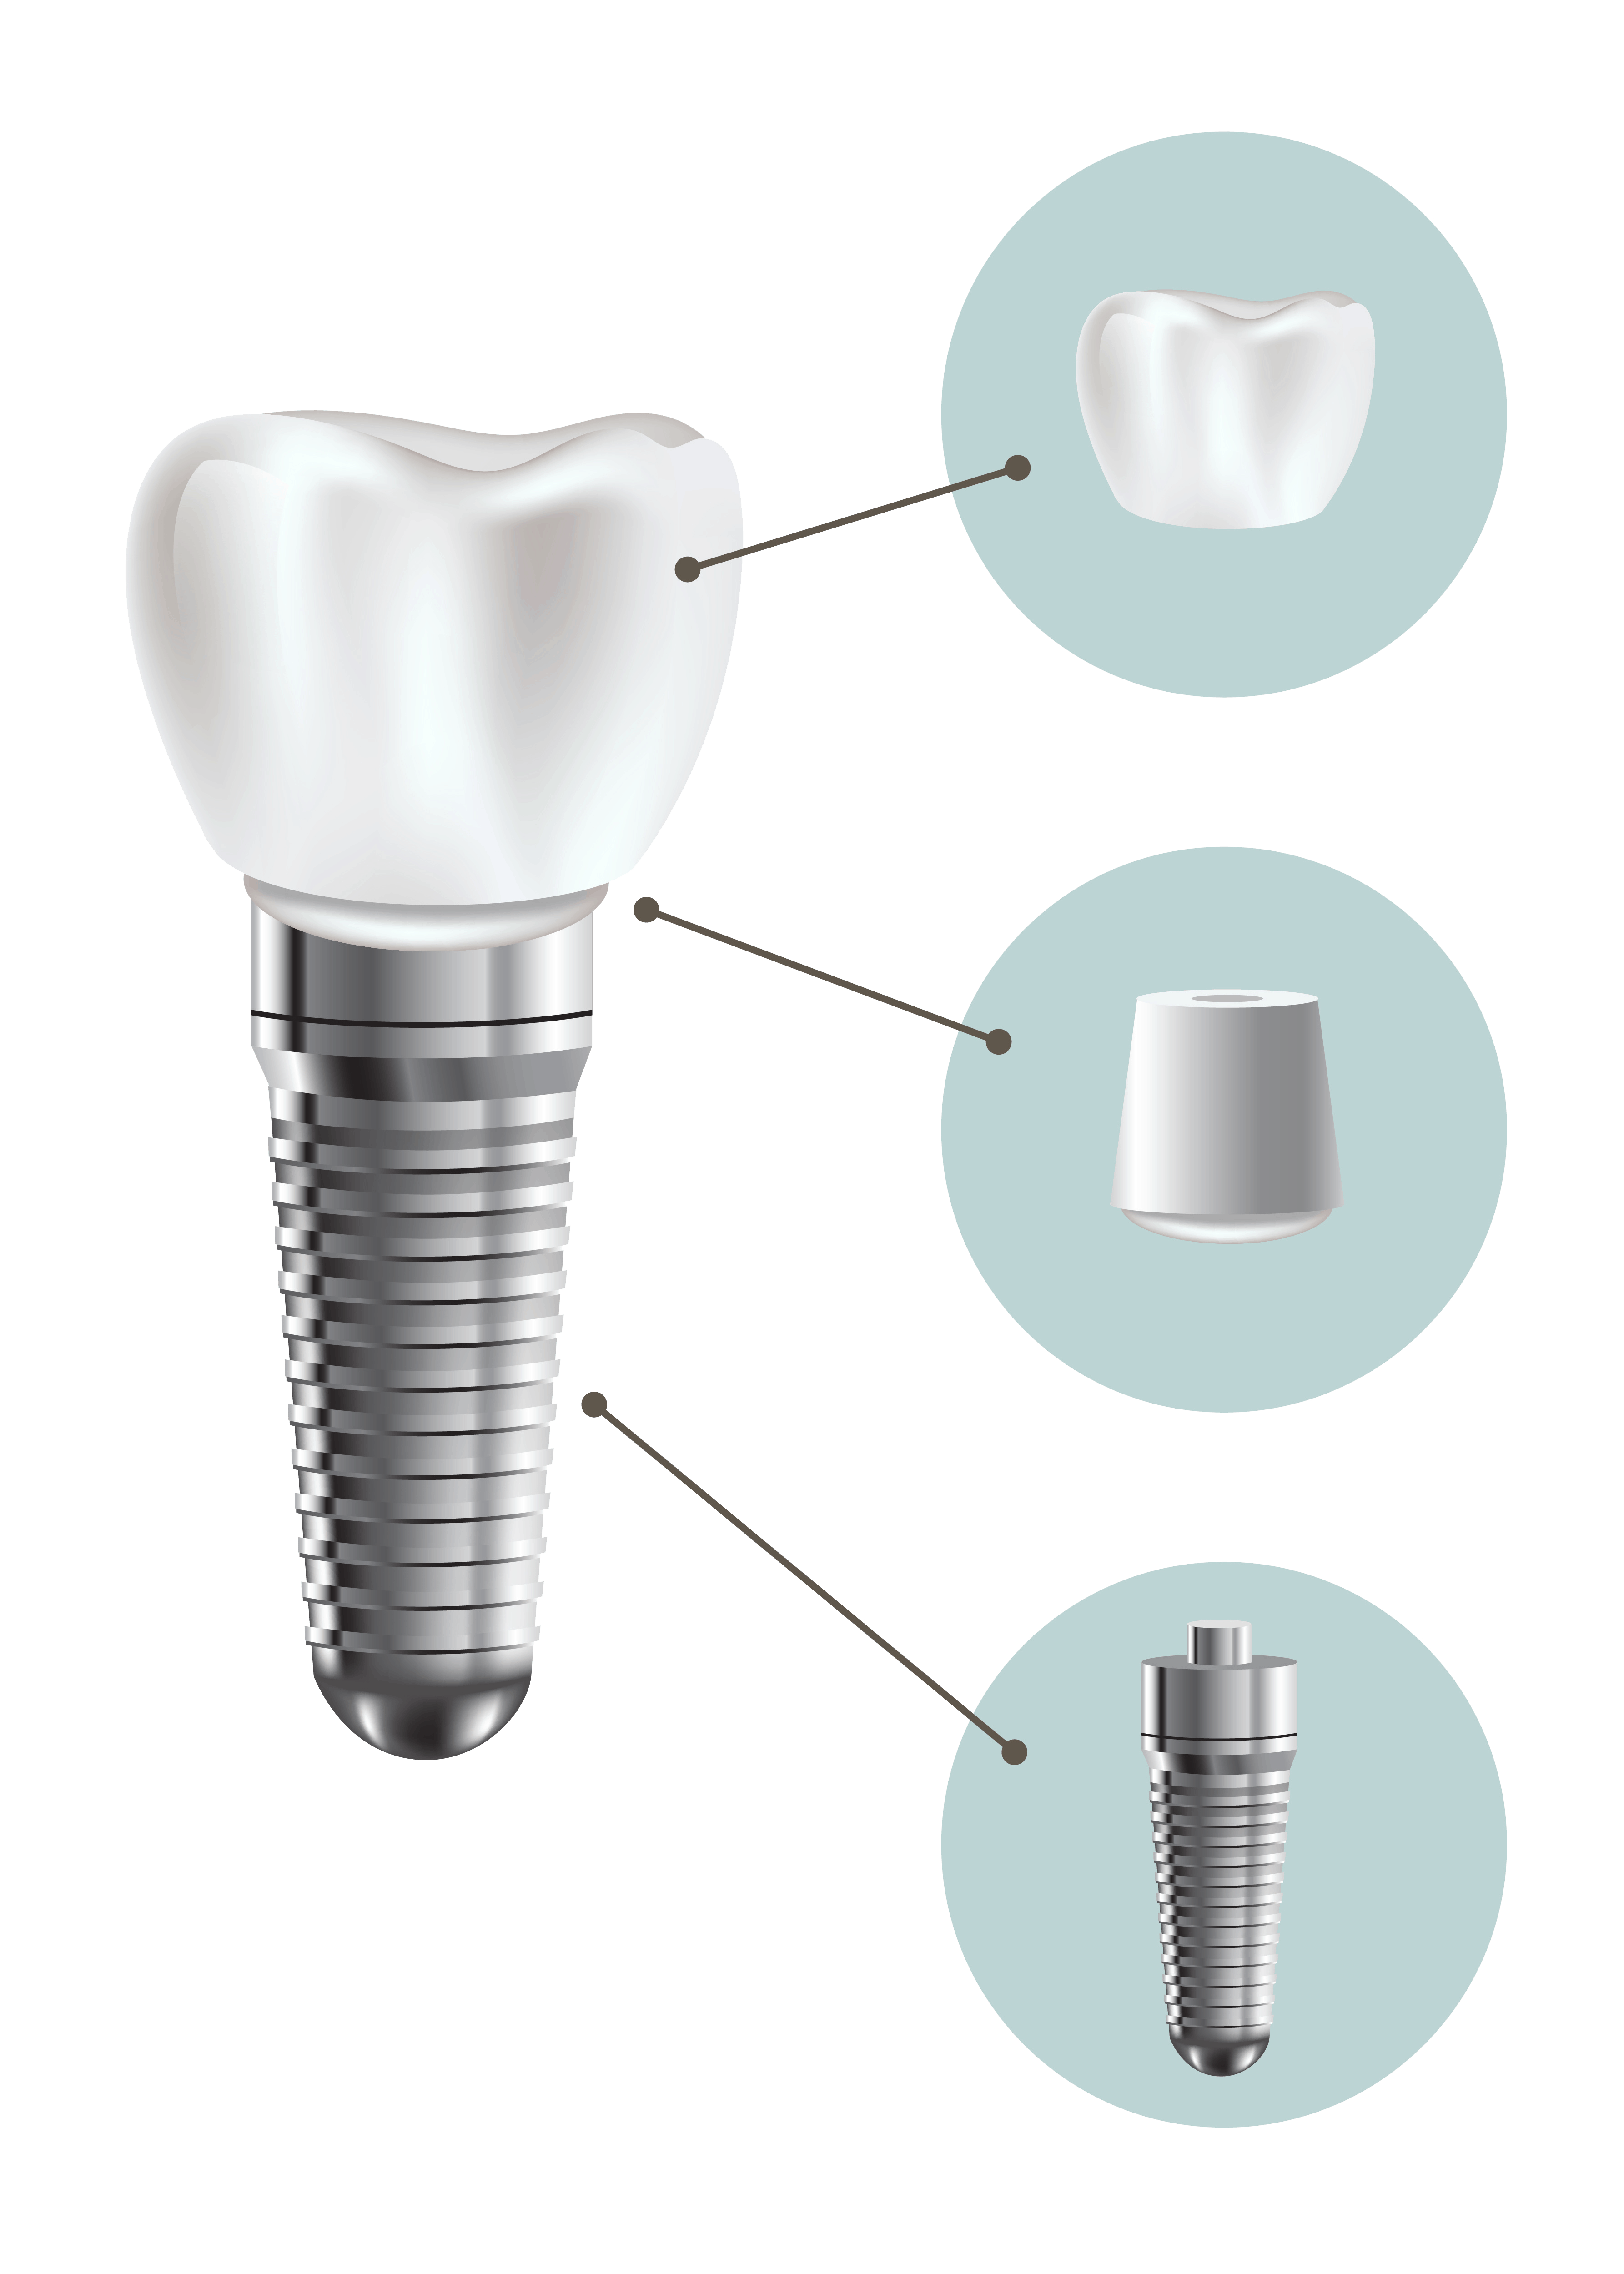 Dental implant structure medical pictorial educative infographic poster